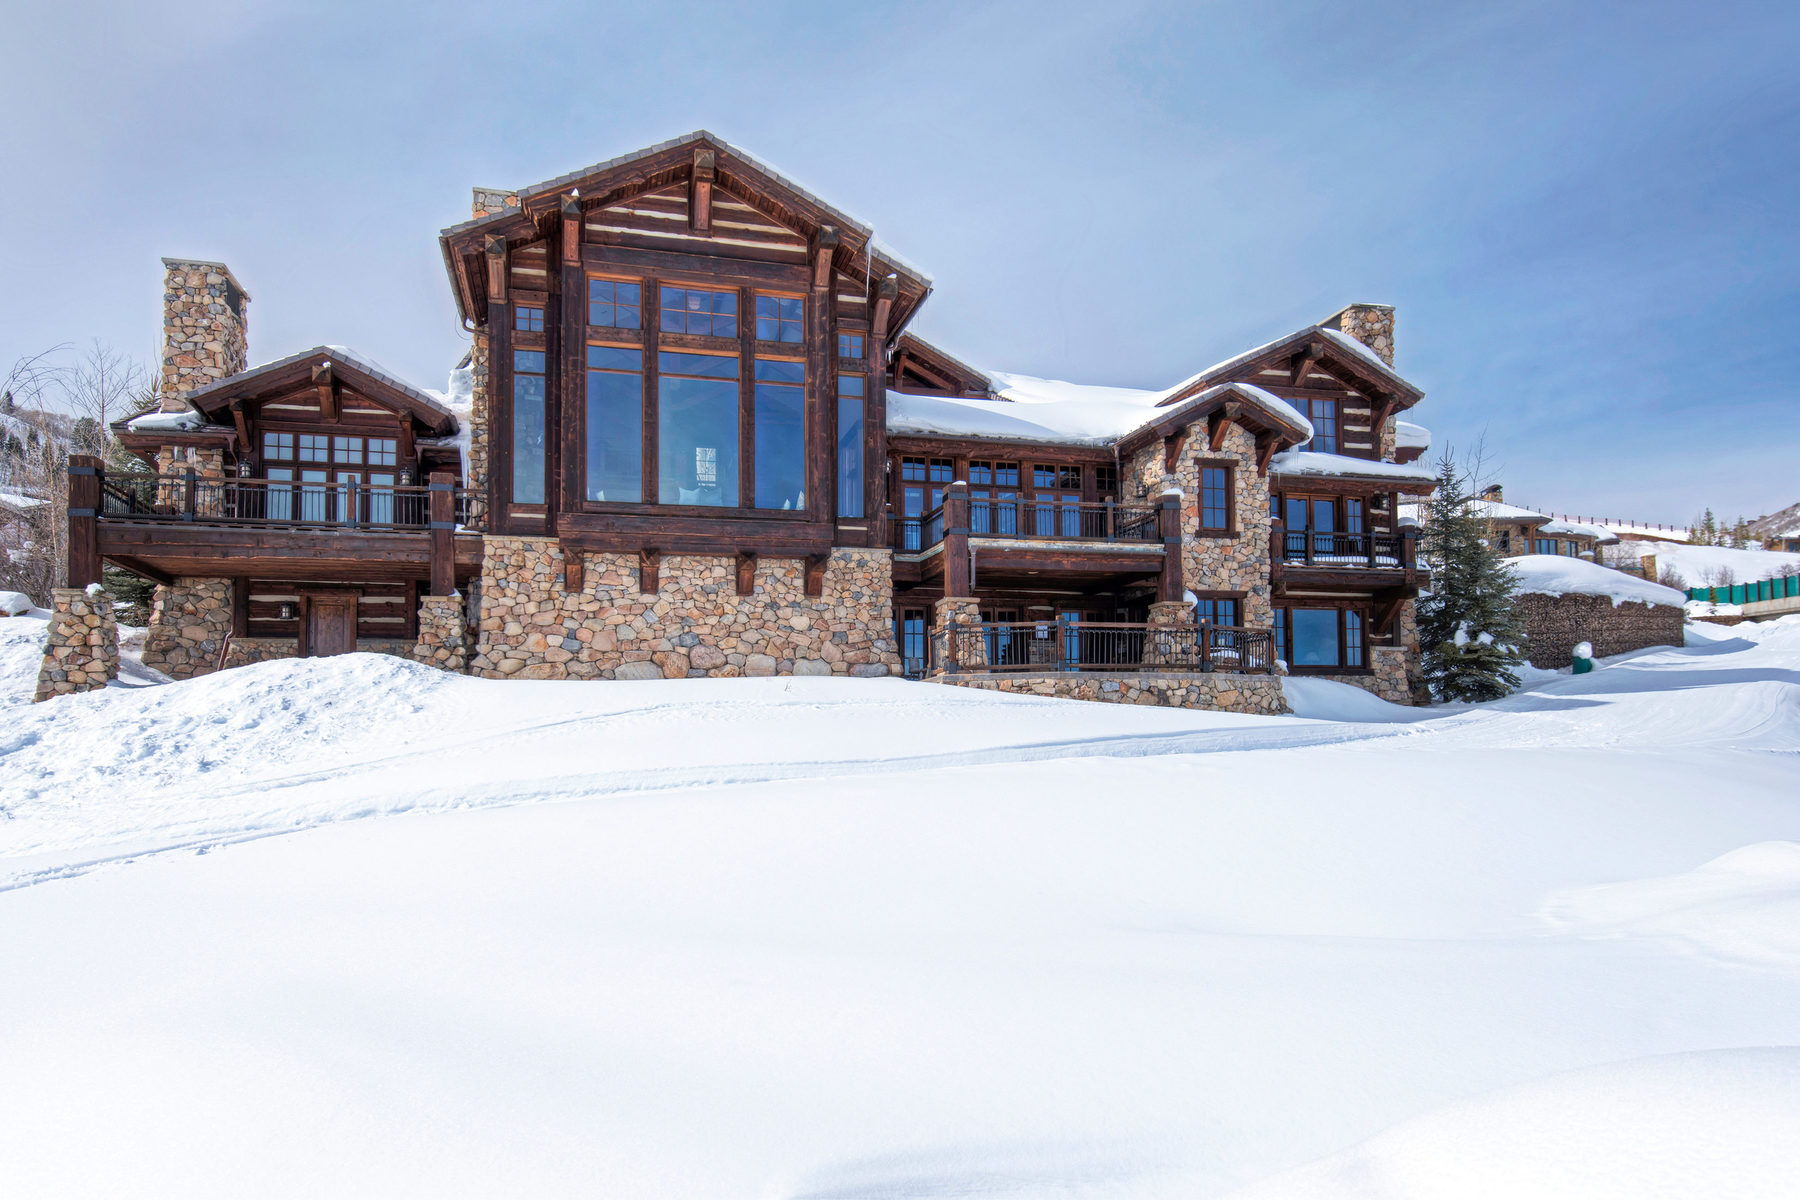 一戸建て のために 売買 アット Rustic Lodge-Style Home with Grand Views and Direct Ski-in, Ski-out Access 2727 W Deer Hollow Ct Park City, ユタ, 84060 アメリカ合衆国